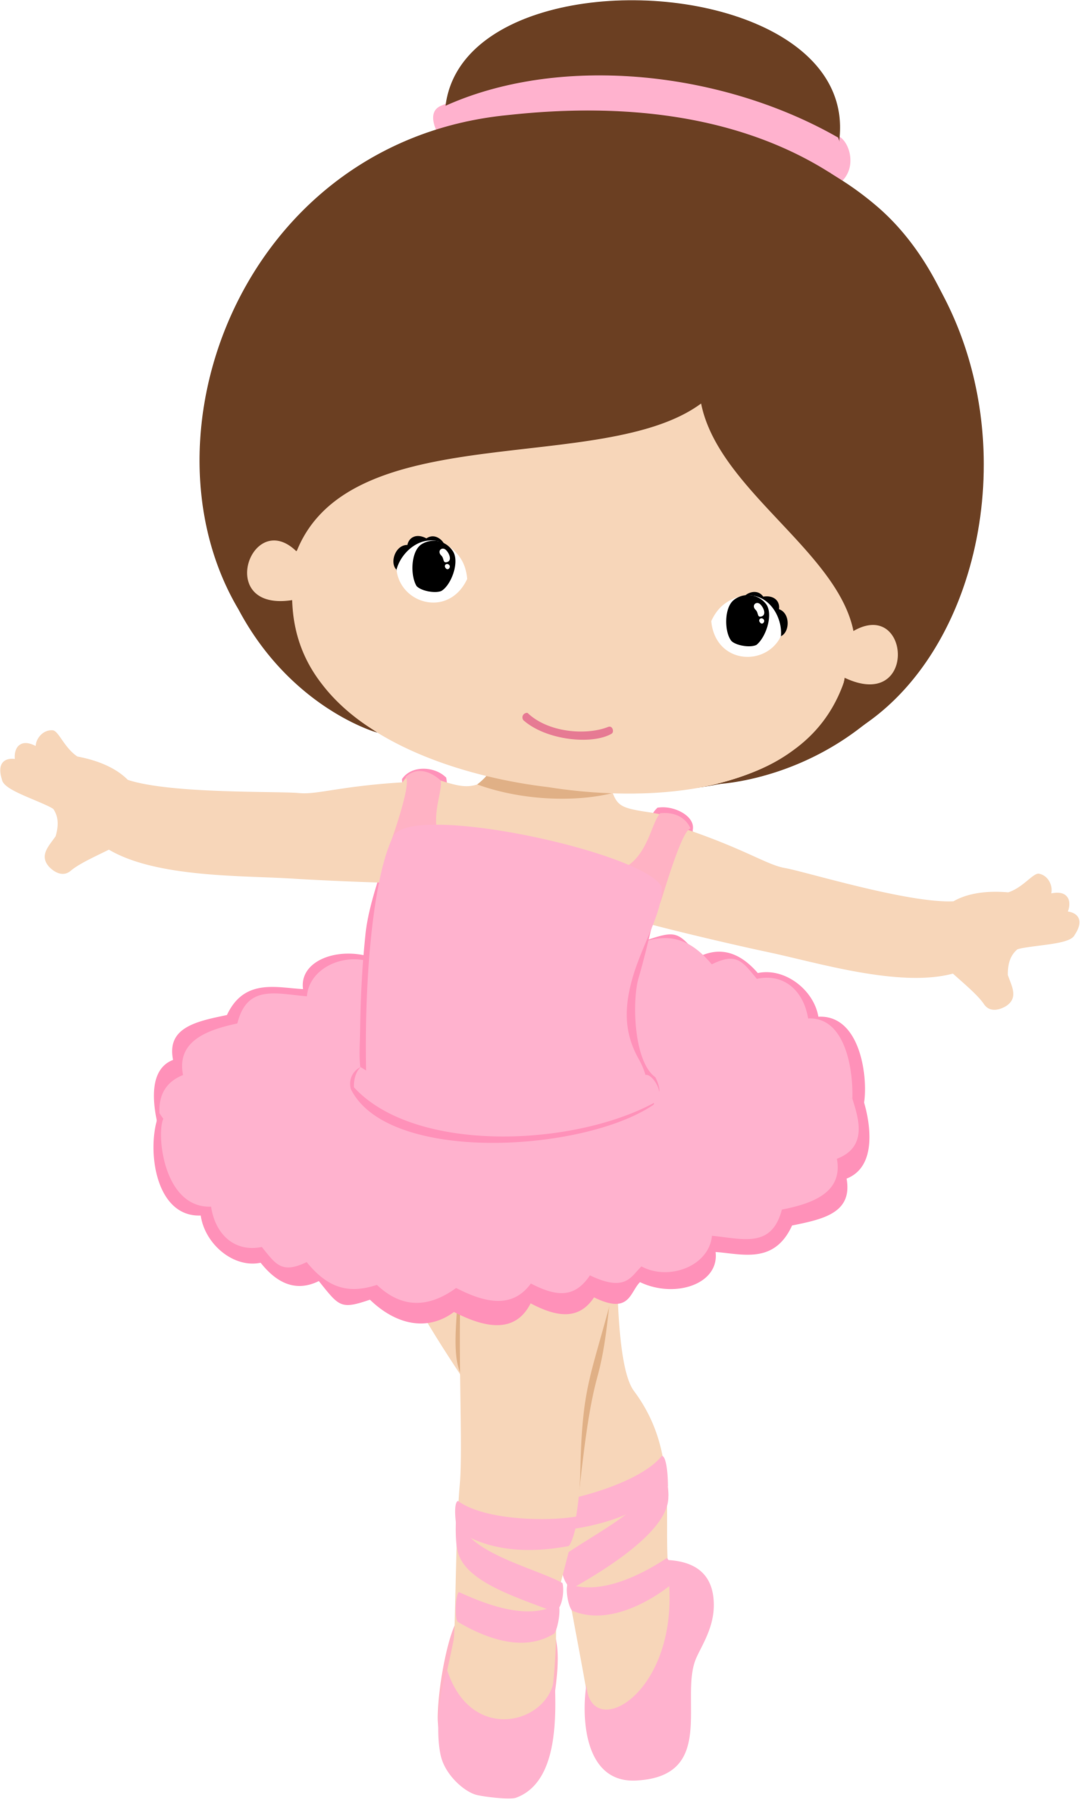 Water clipart ballet. Pin by adlinaid santos